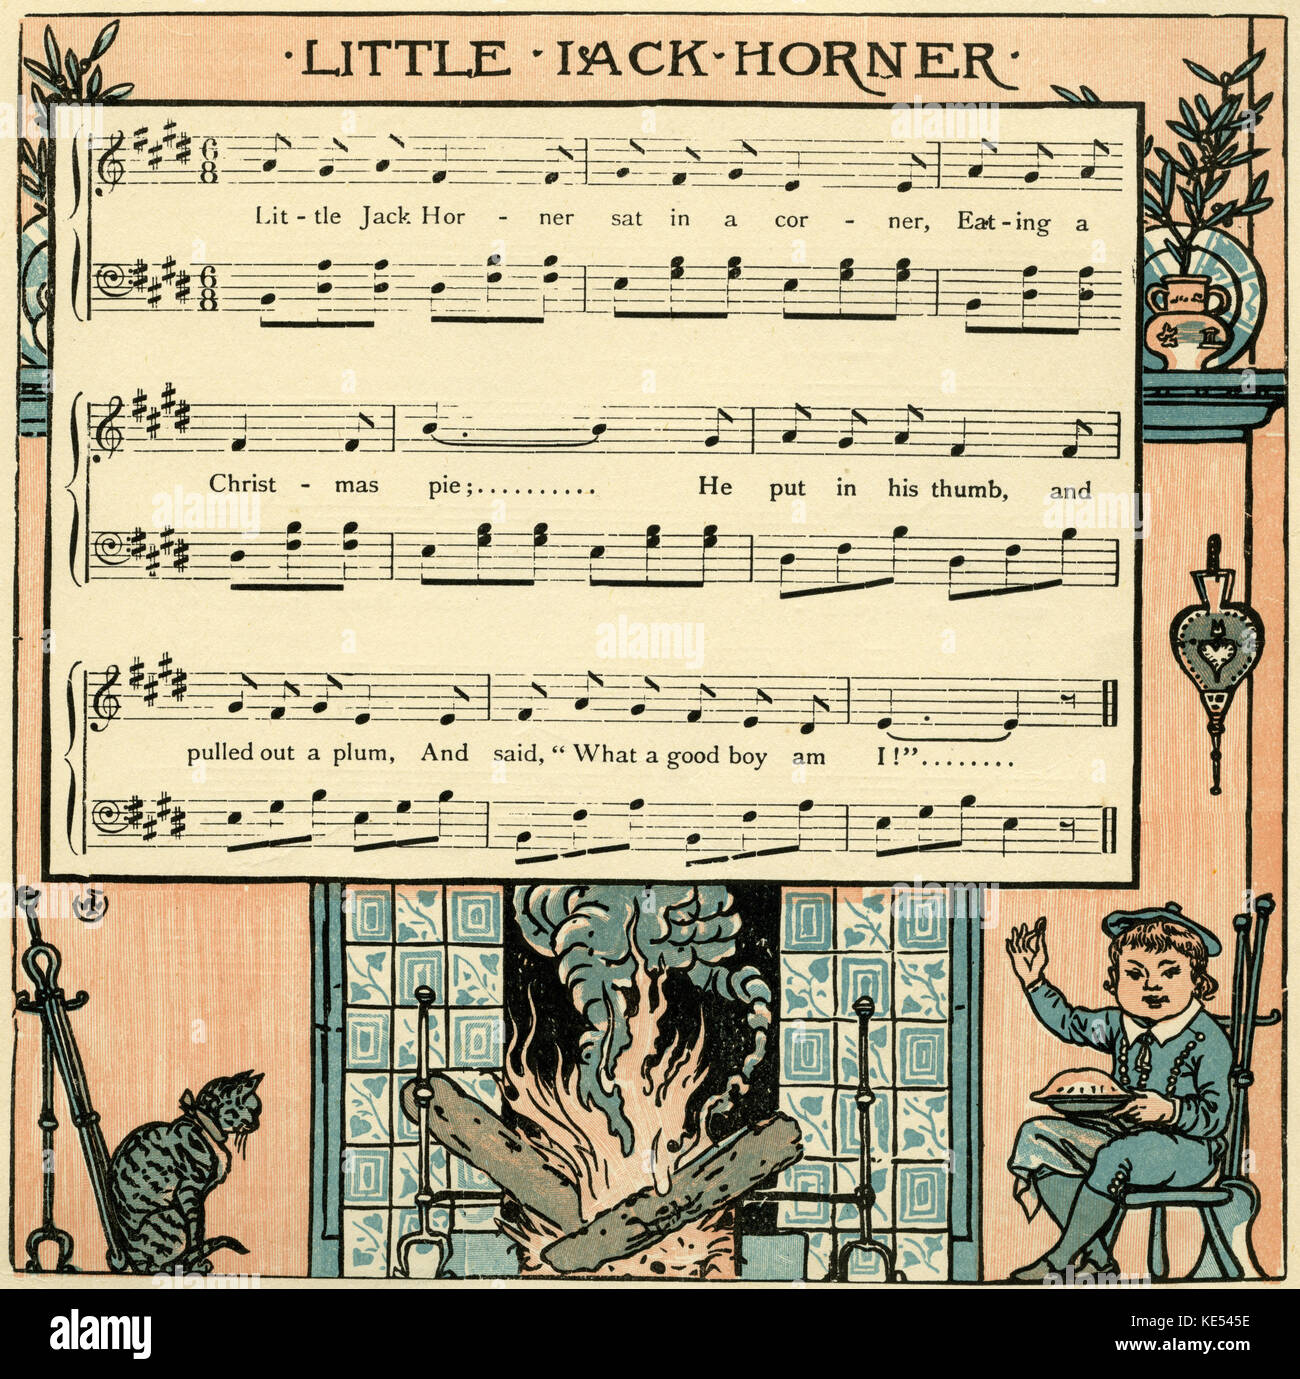 Litte Jack Horner, nursery rhyme score, illustration (1877) by Walter Crane. English artist of Arts and Crafts movement, - Stock Image